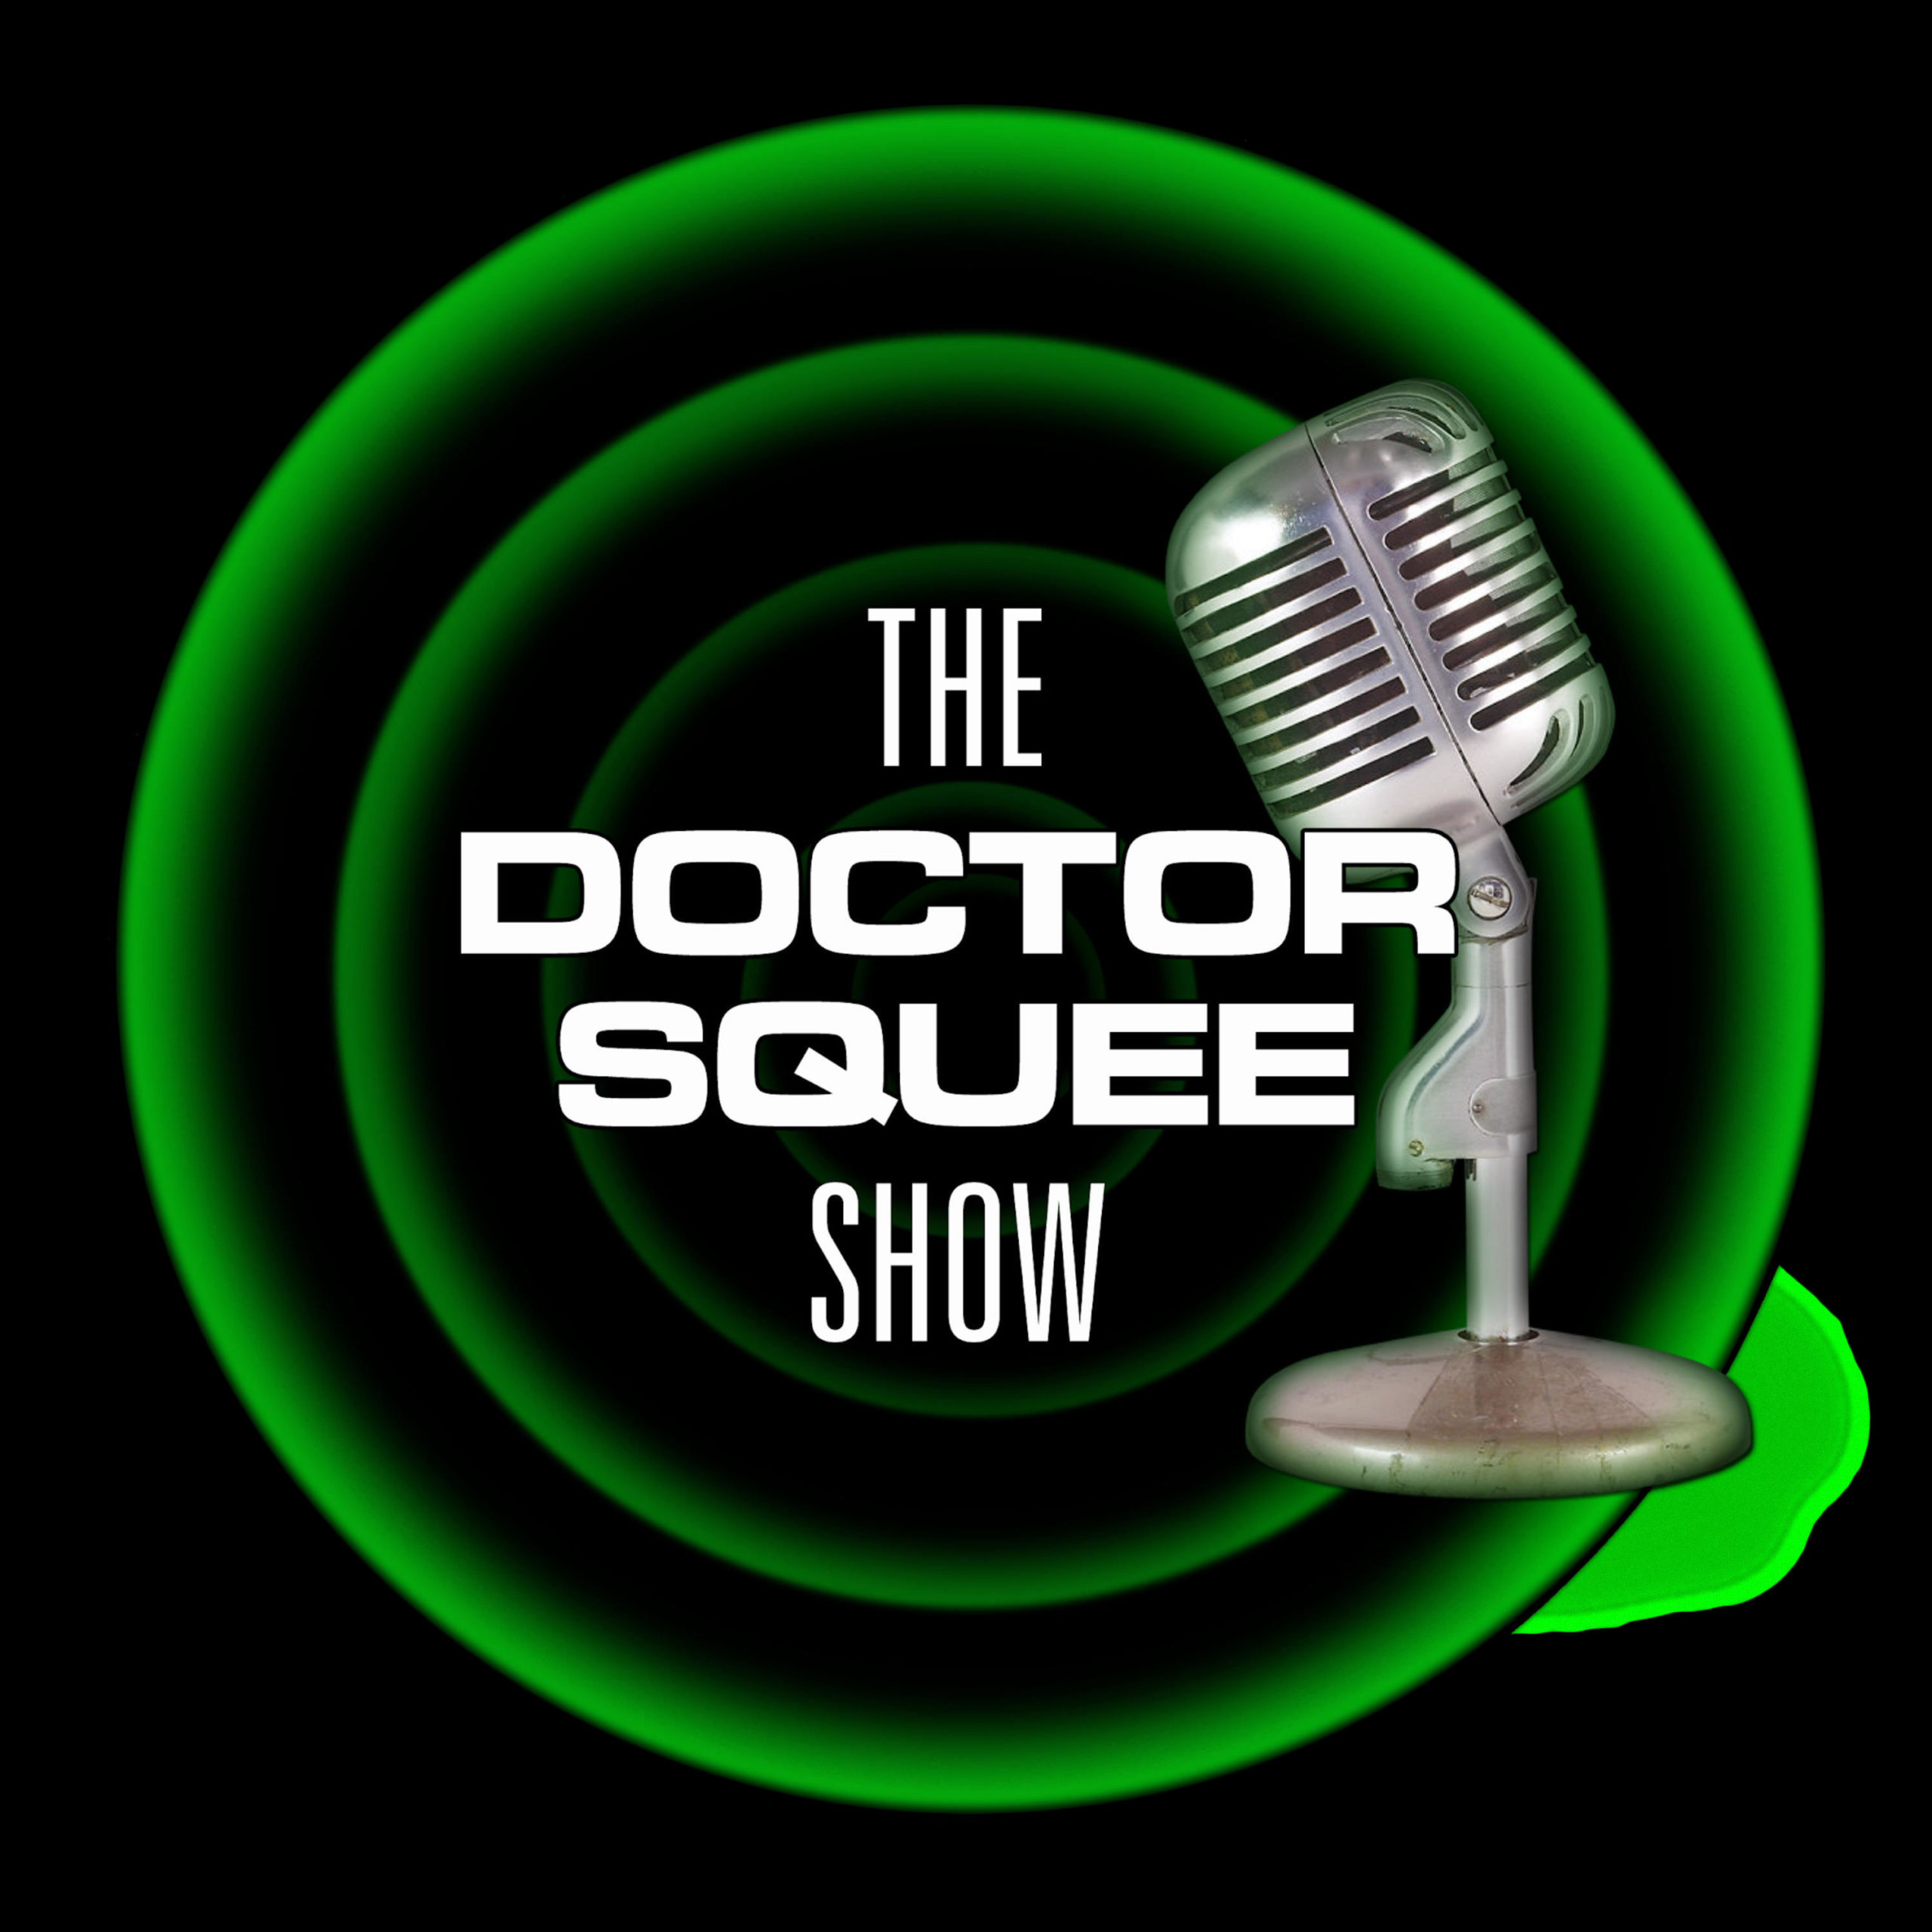 The Doctor Squee Show The Doctor Squee Show -Ep50- 29/4/21: Oscars 2021 / Falcon and the Winter Soldier